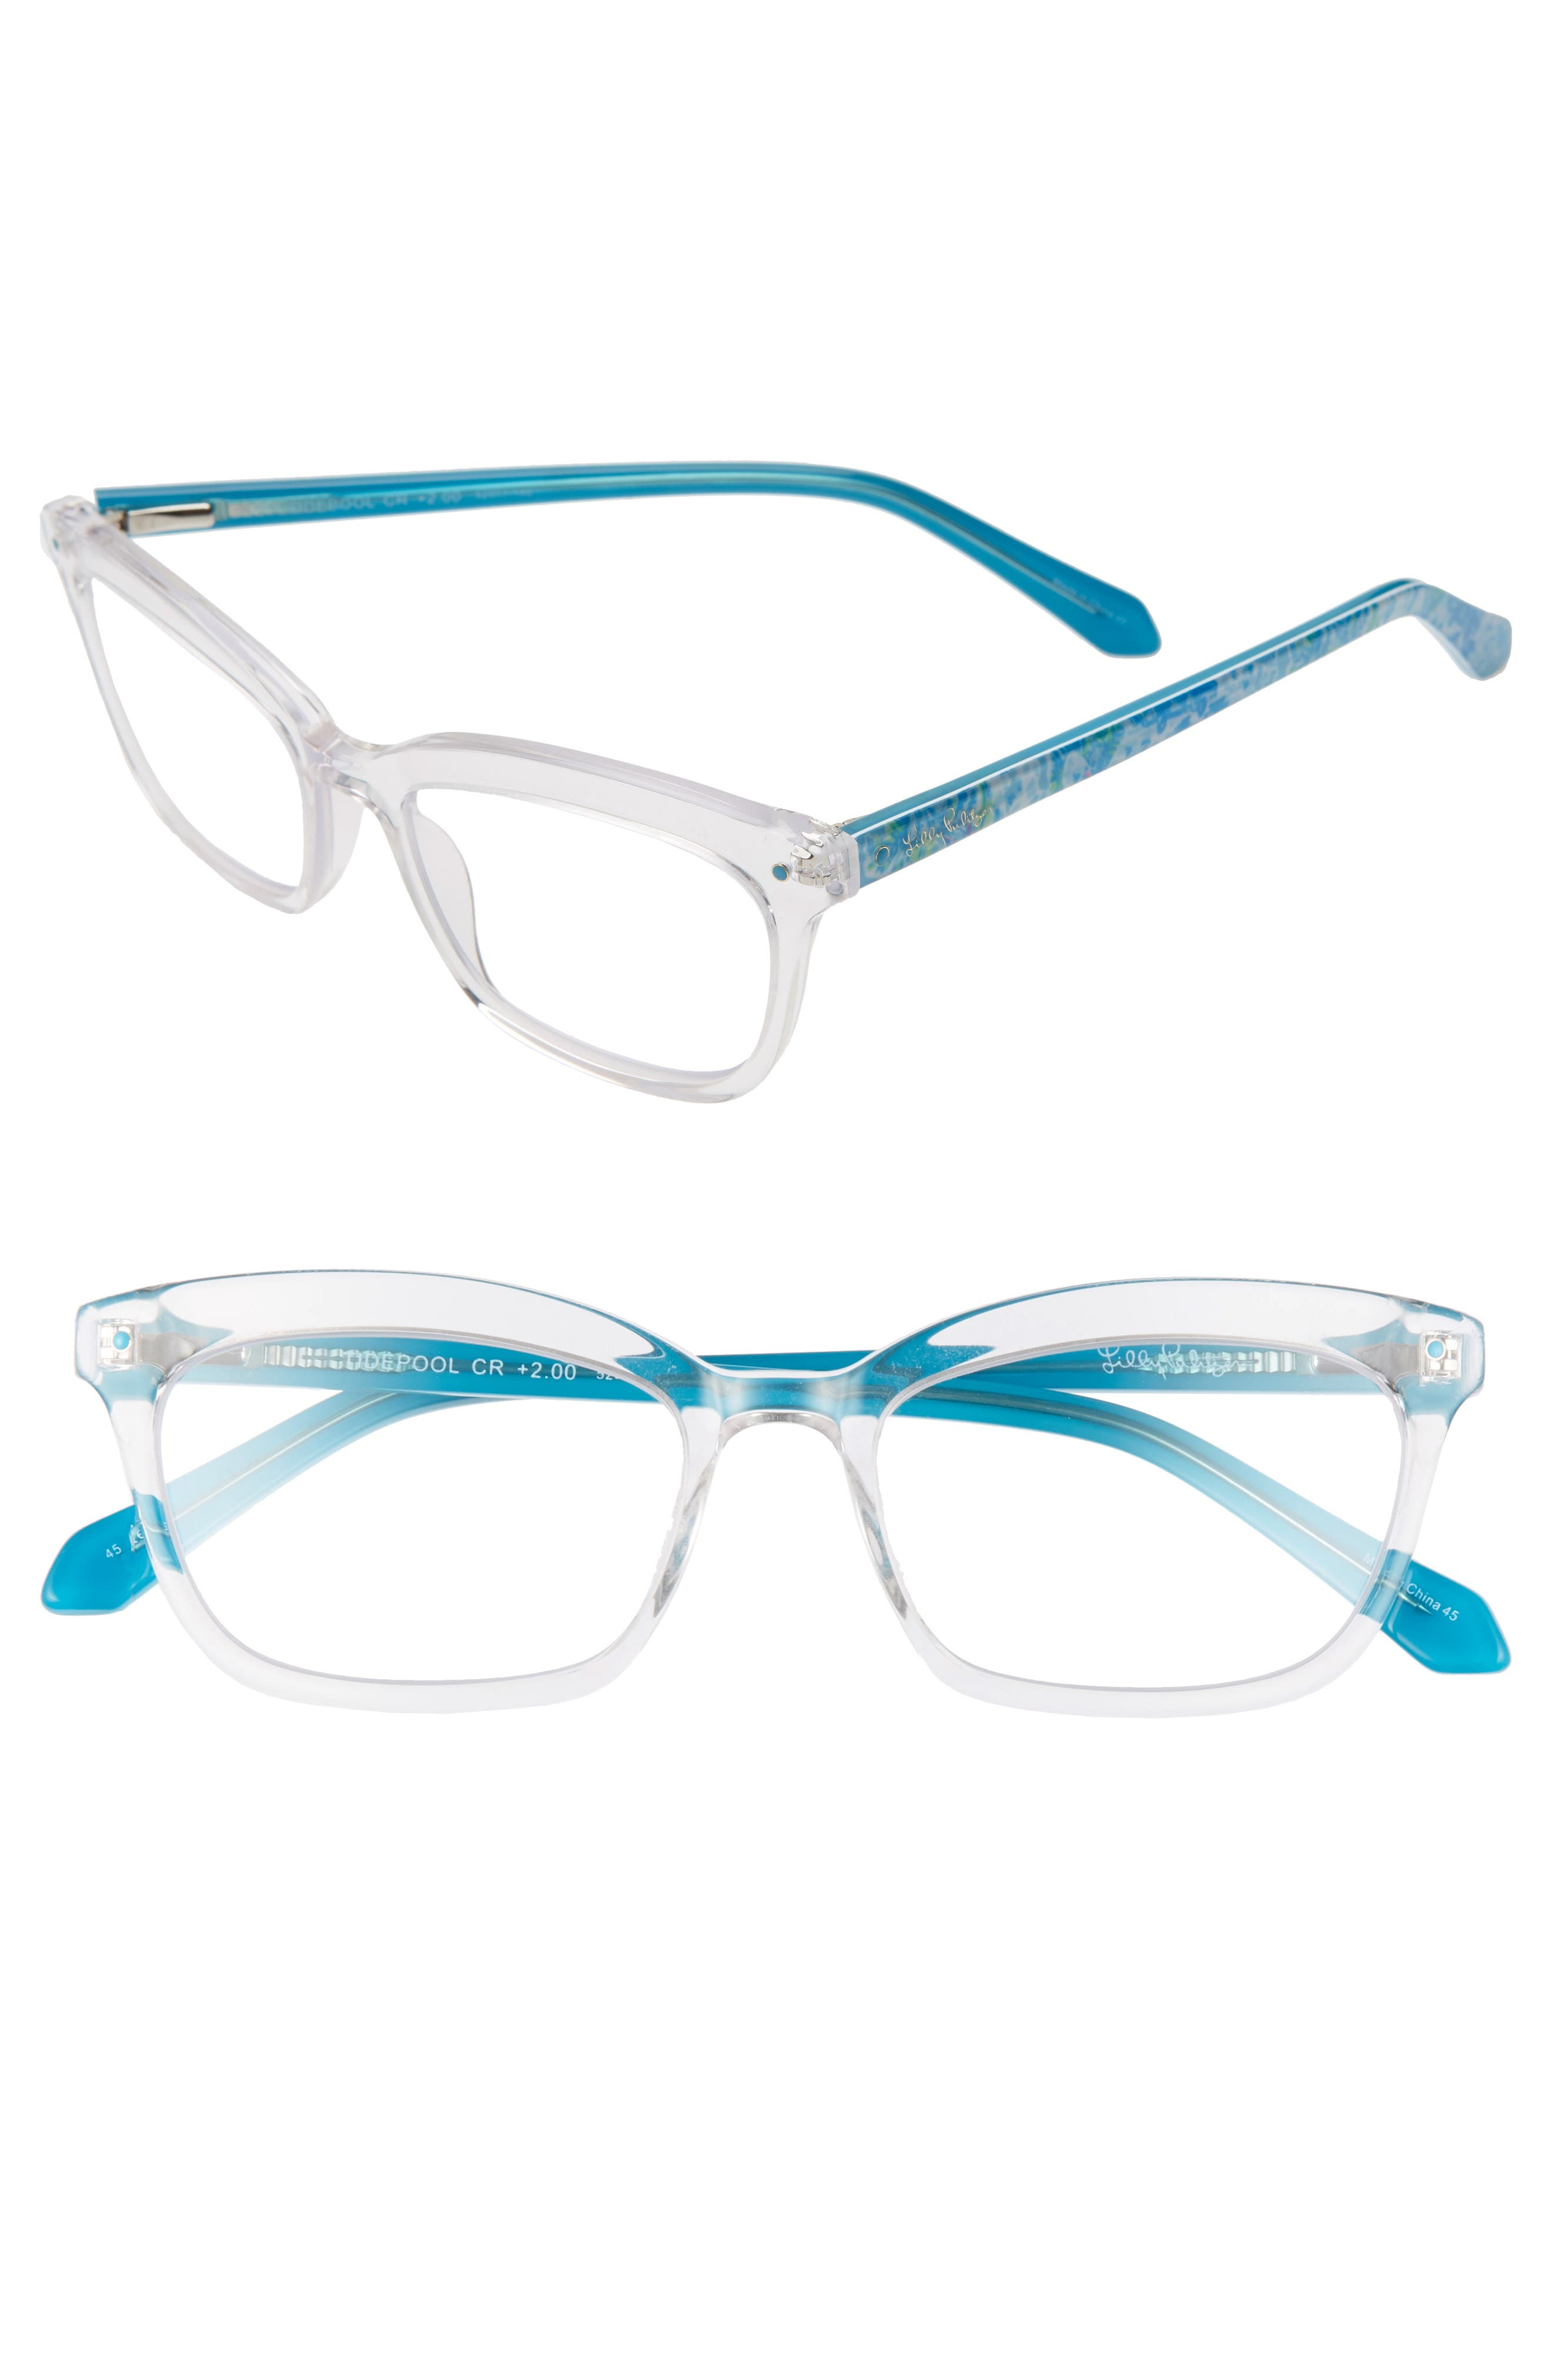 Grab a book and get ready for a day lounging seaside with these reading glasses in a classically chic silhouette. Style Name: Lilly Pulitzer Tidepool 52mm Reading Glasses. Style Number: 5984858. Available in stores.